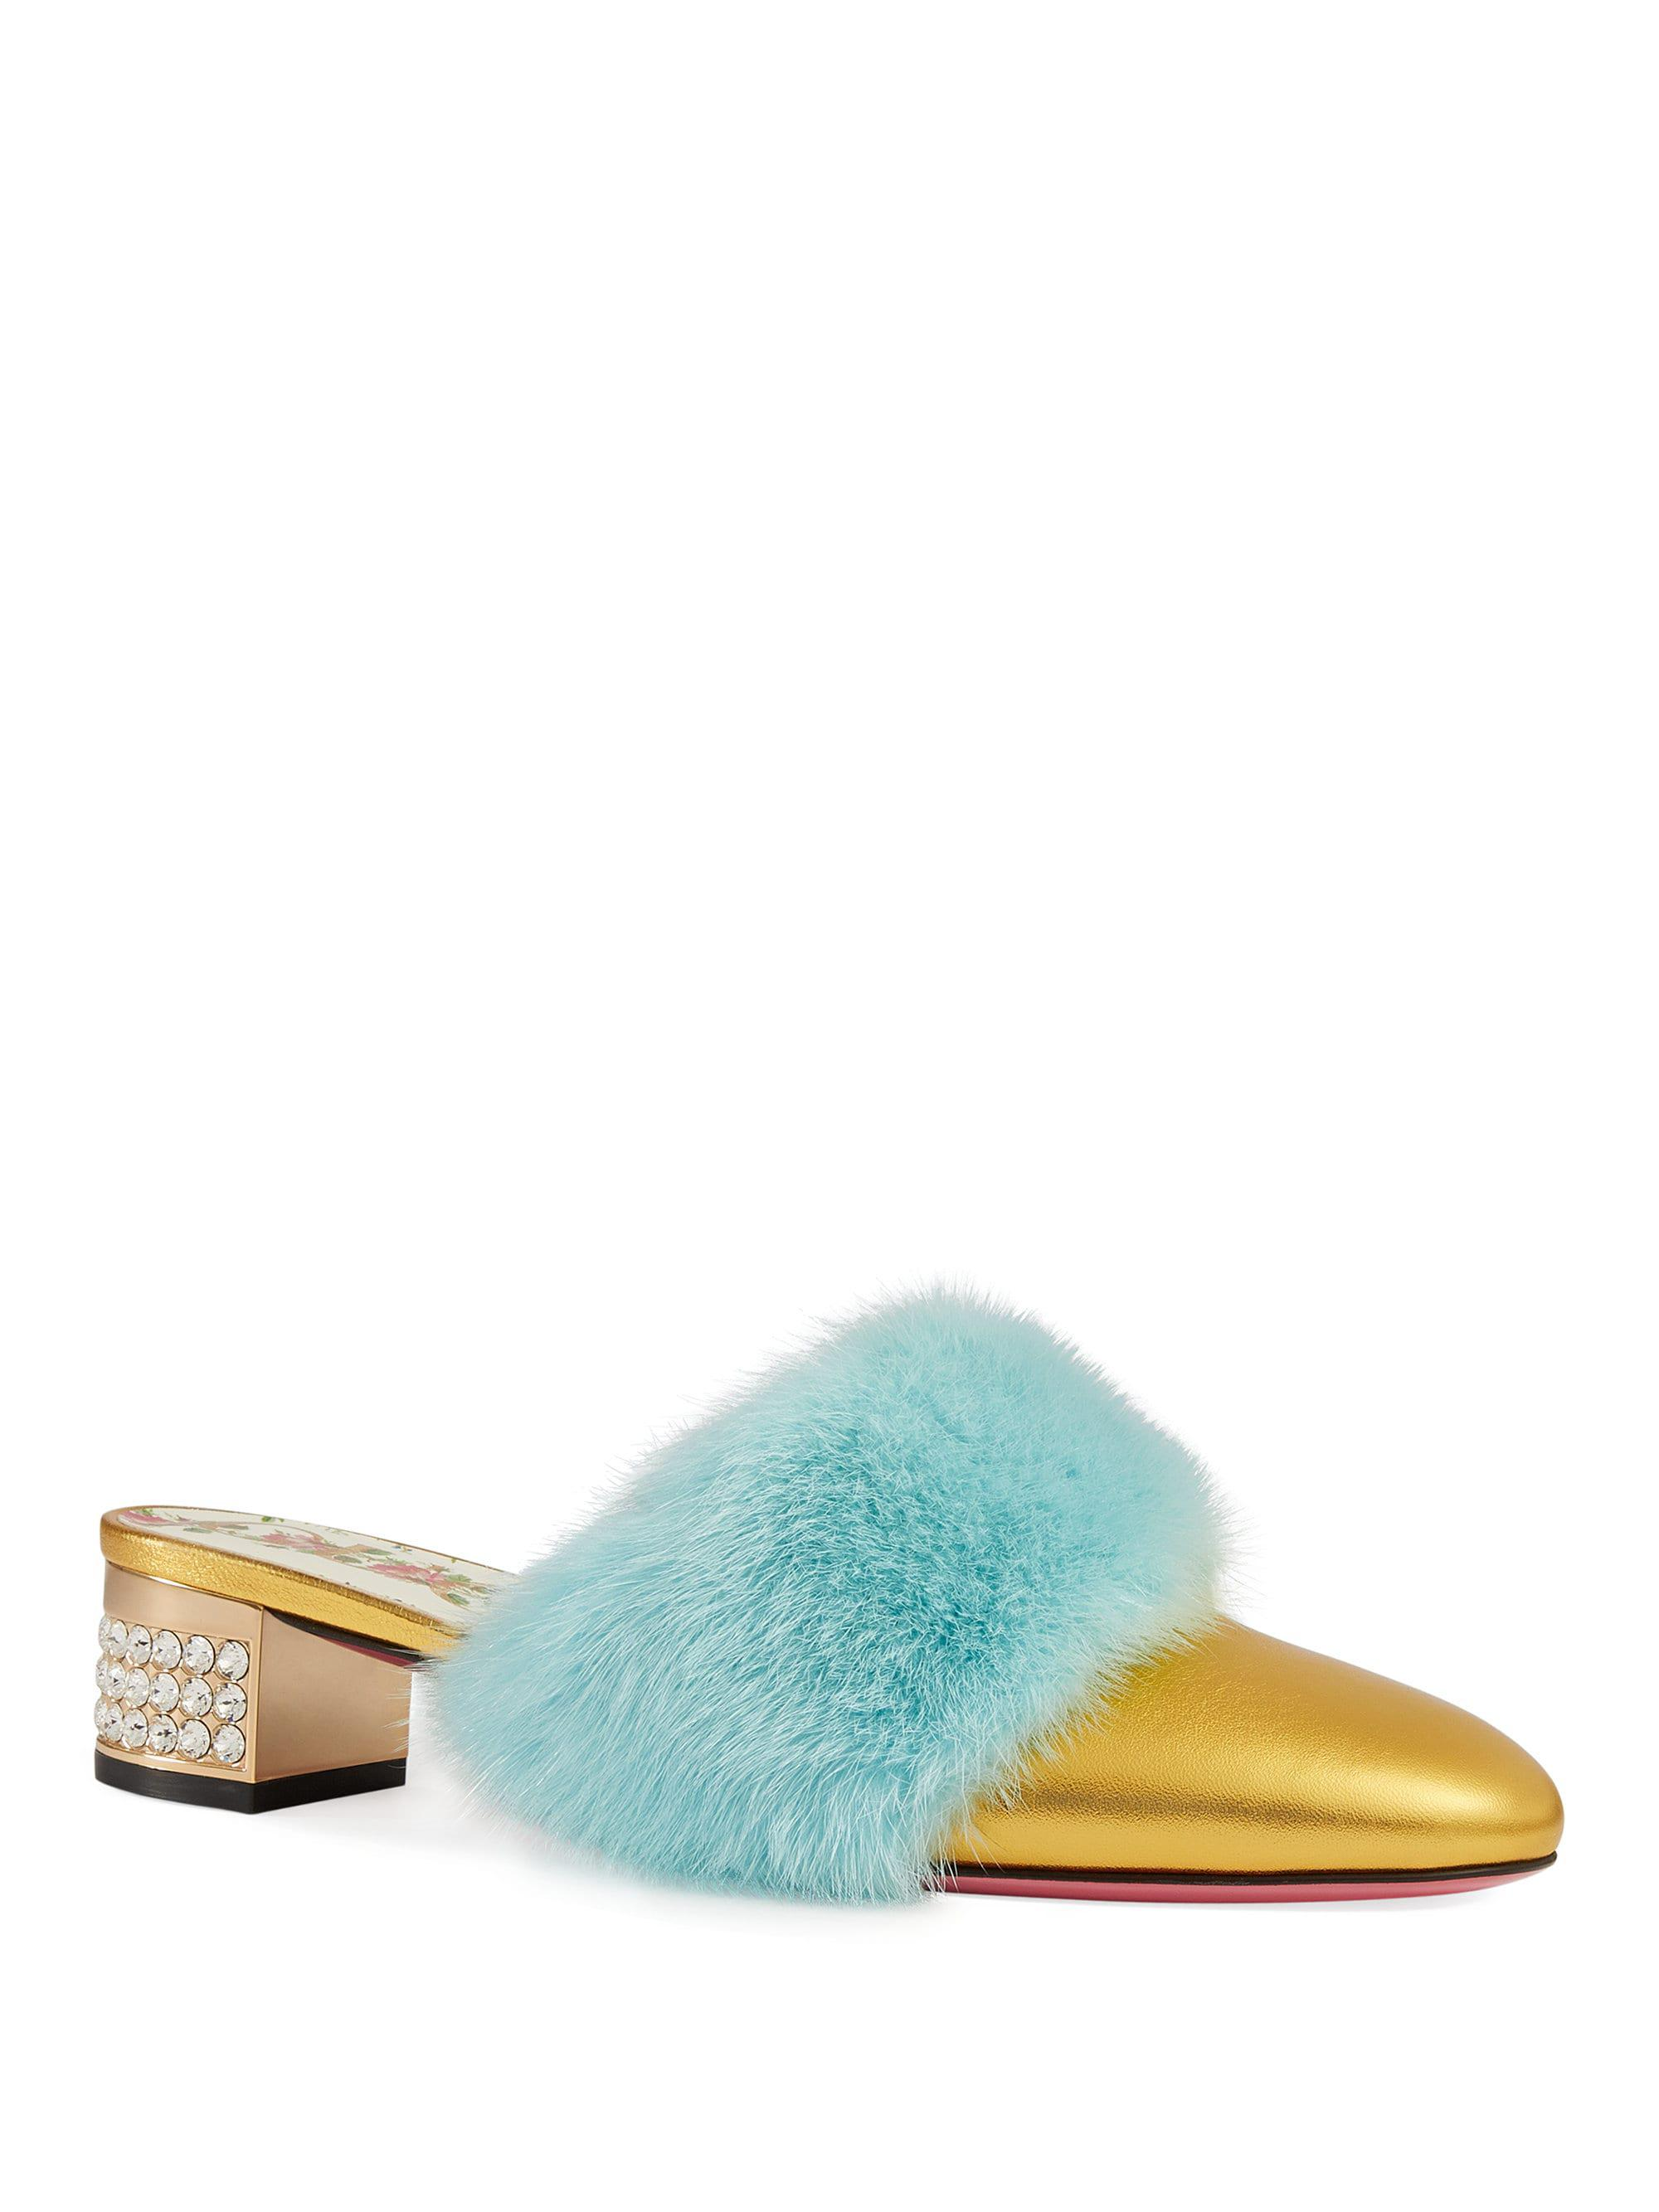 41a48d794e3 Lyst - Gucci Leather Slides With Mink Fur in Blue